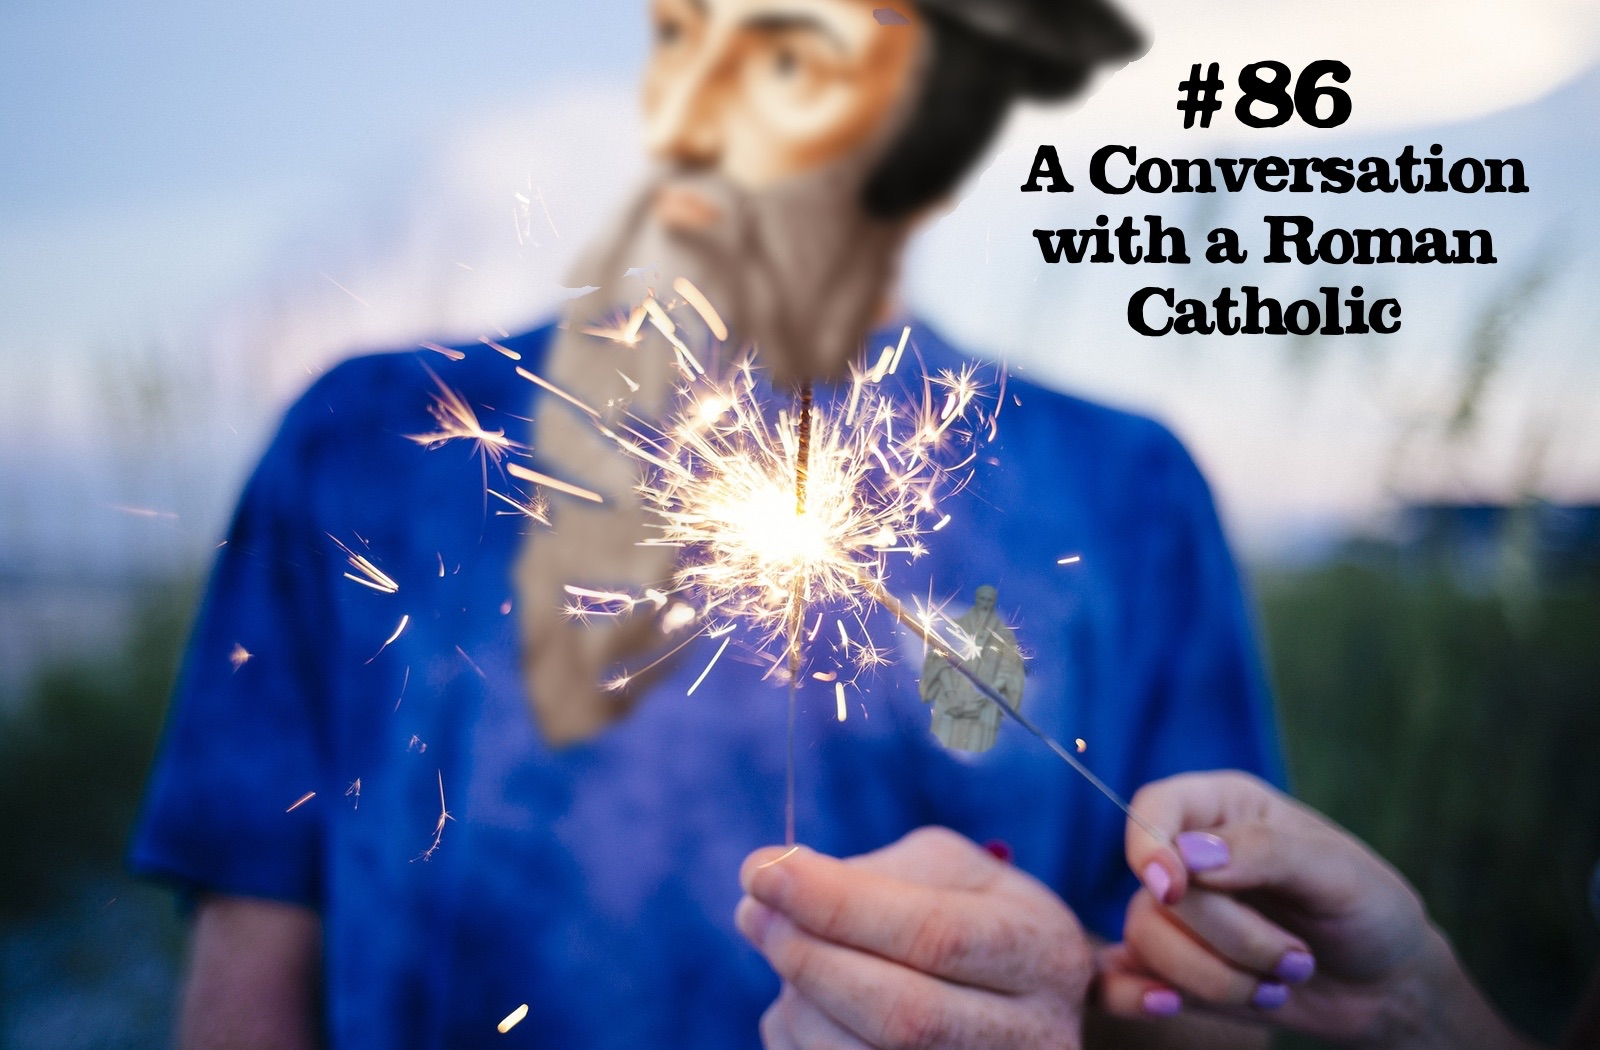 #86 A Conversation with a Roman Catholic